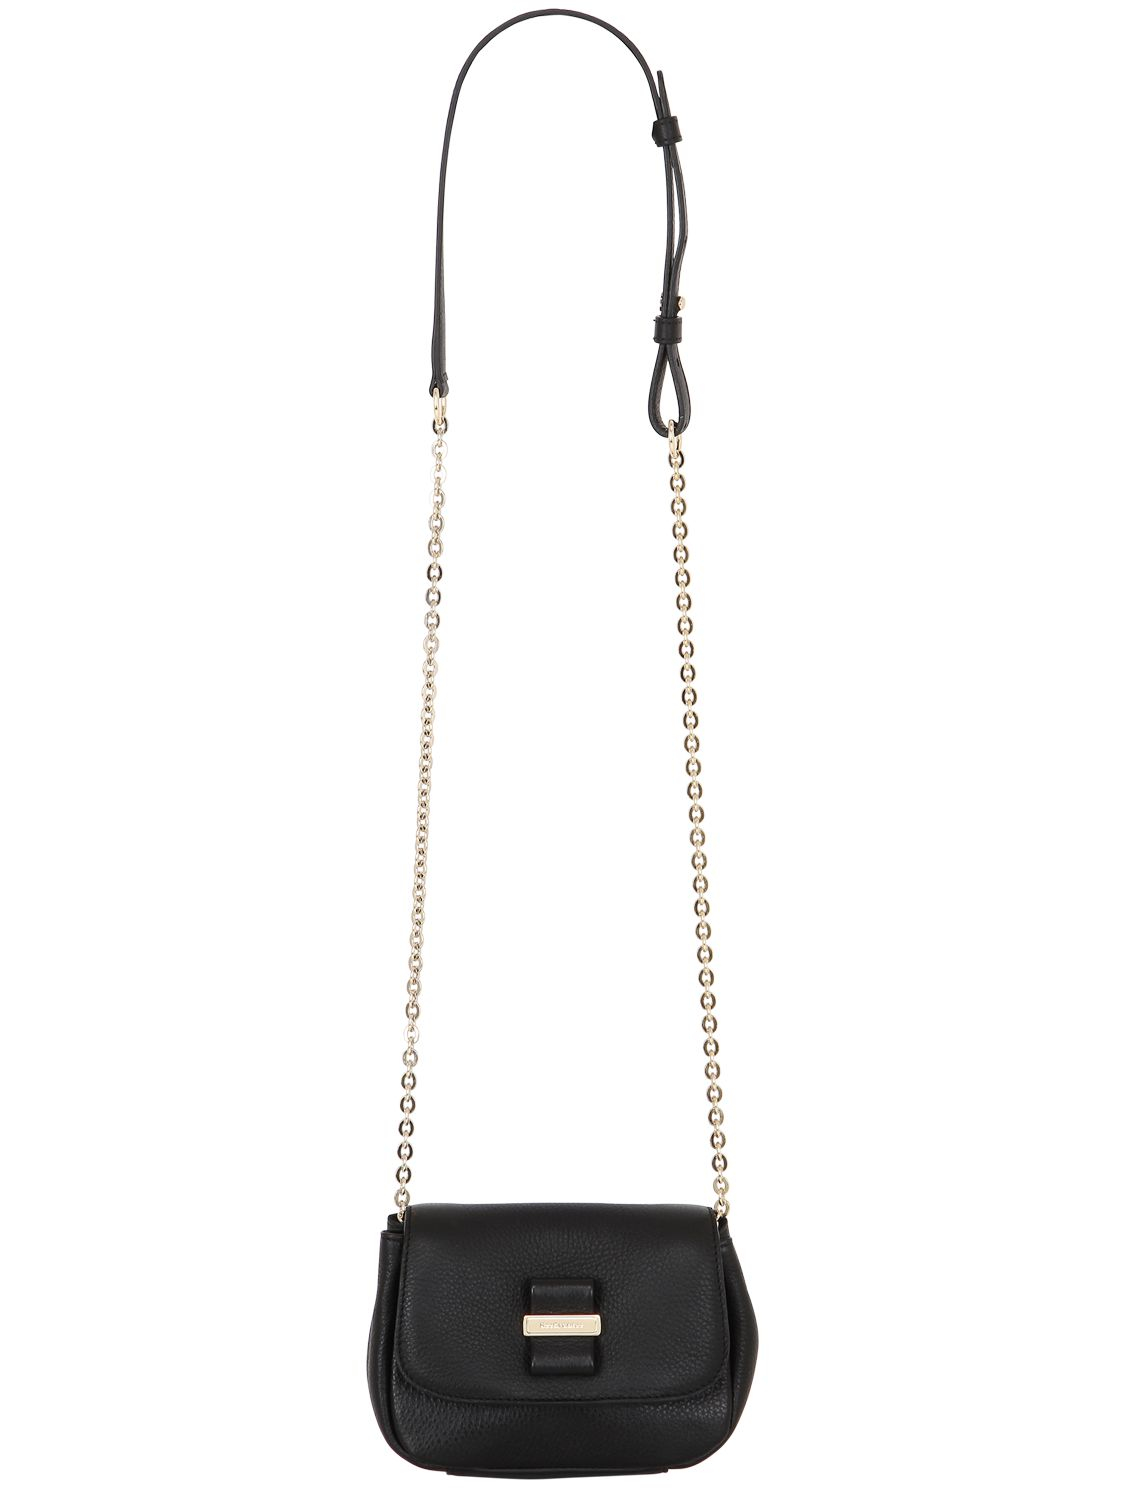 See by chlo�� Small Rosita Leather Shoulder Bag in Black | Lyst